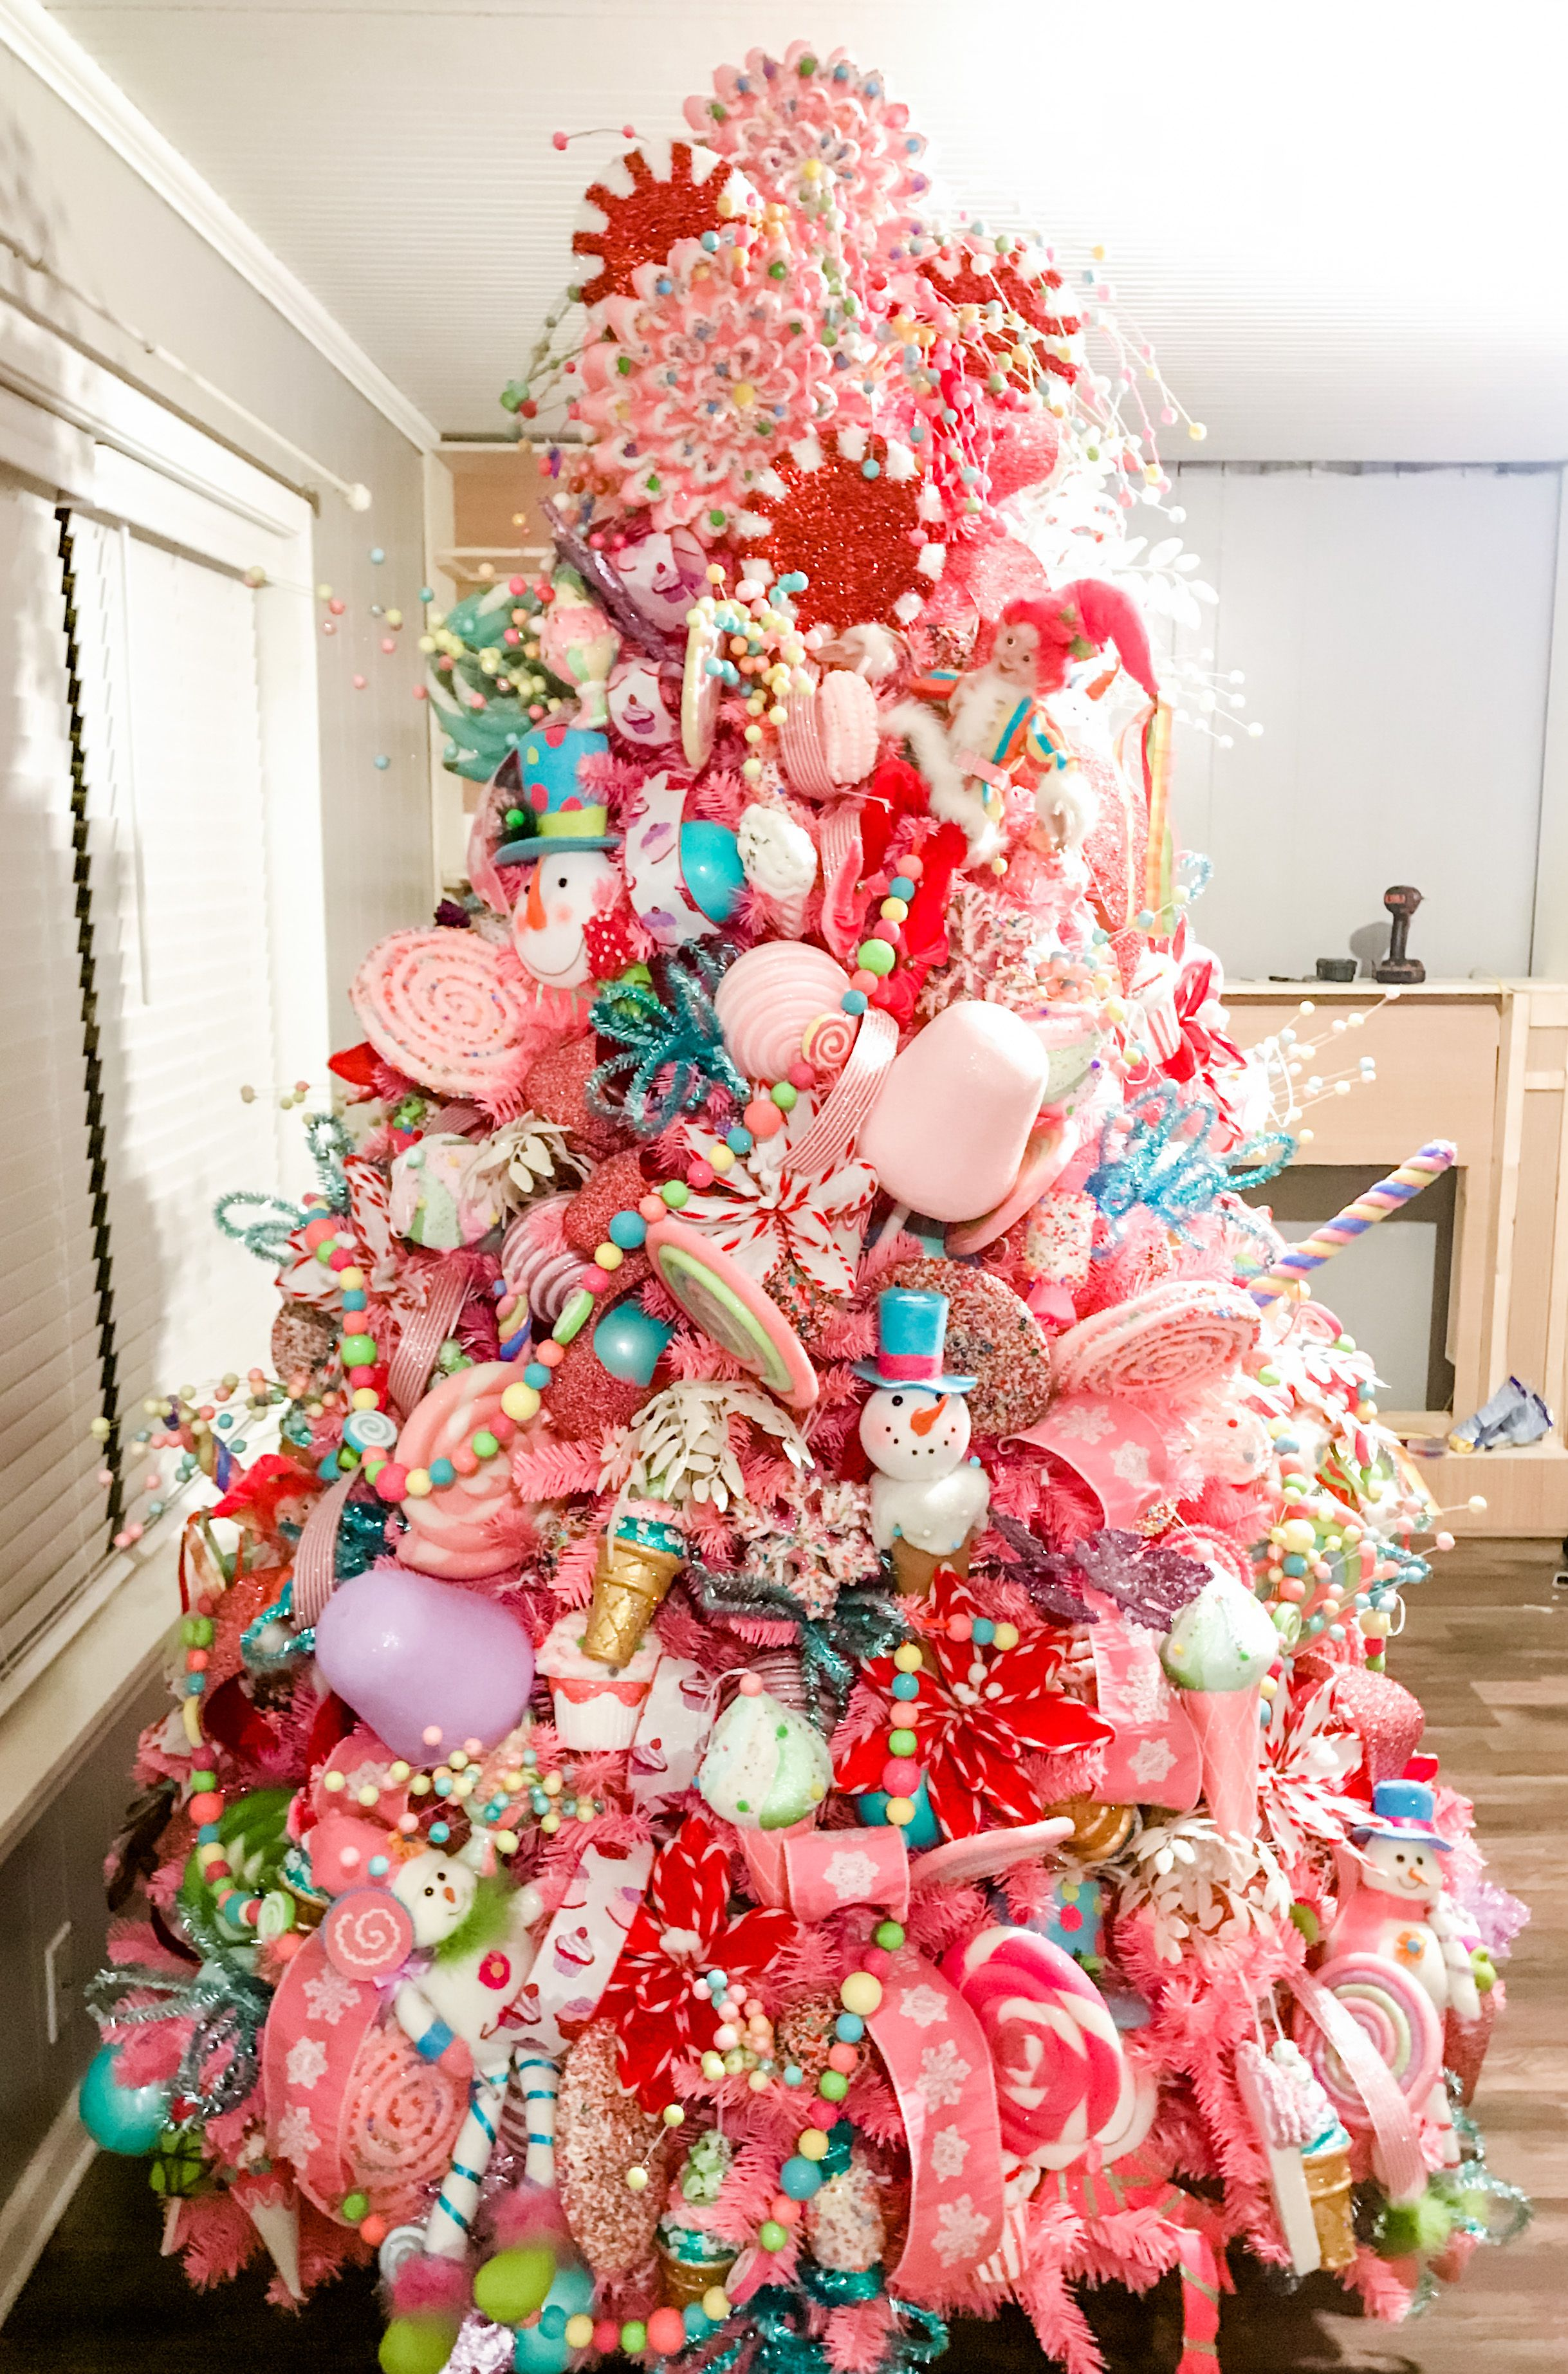 Candy Christmas tree in 2020 | Candy christmas tree, Pink